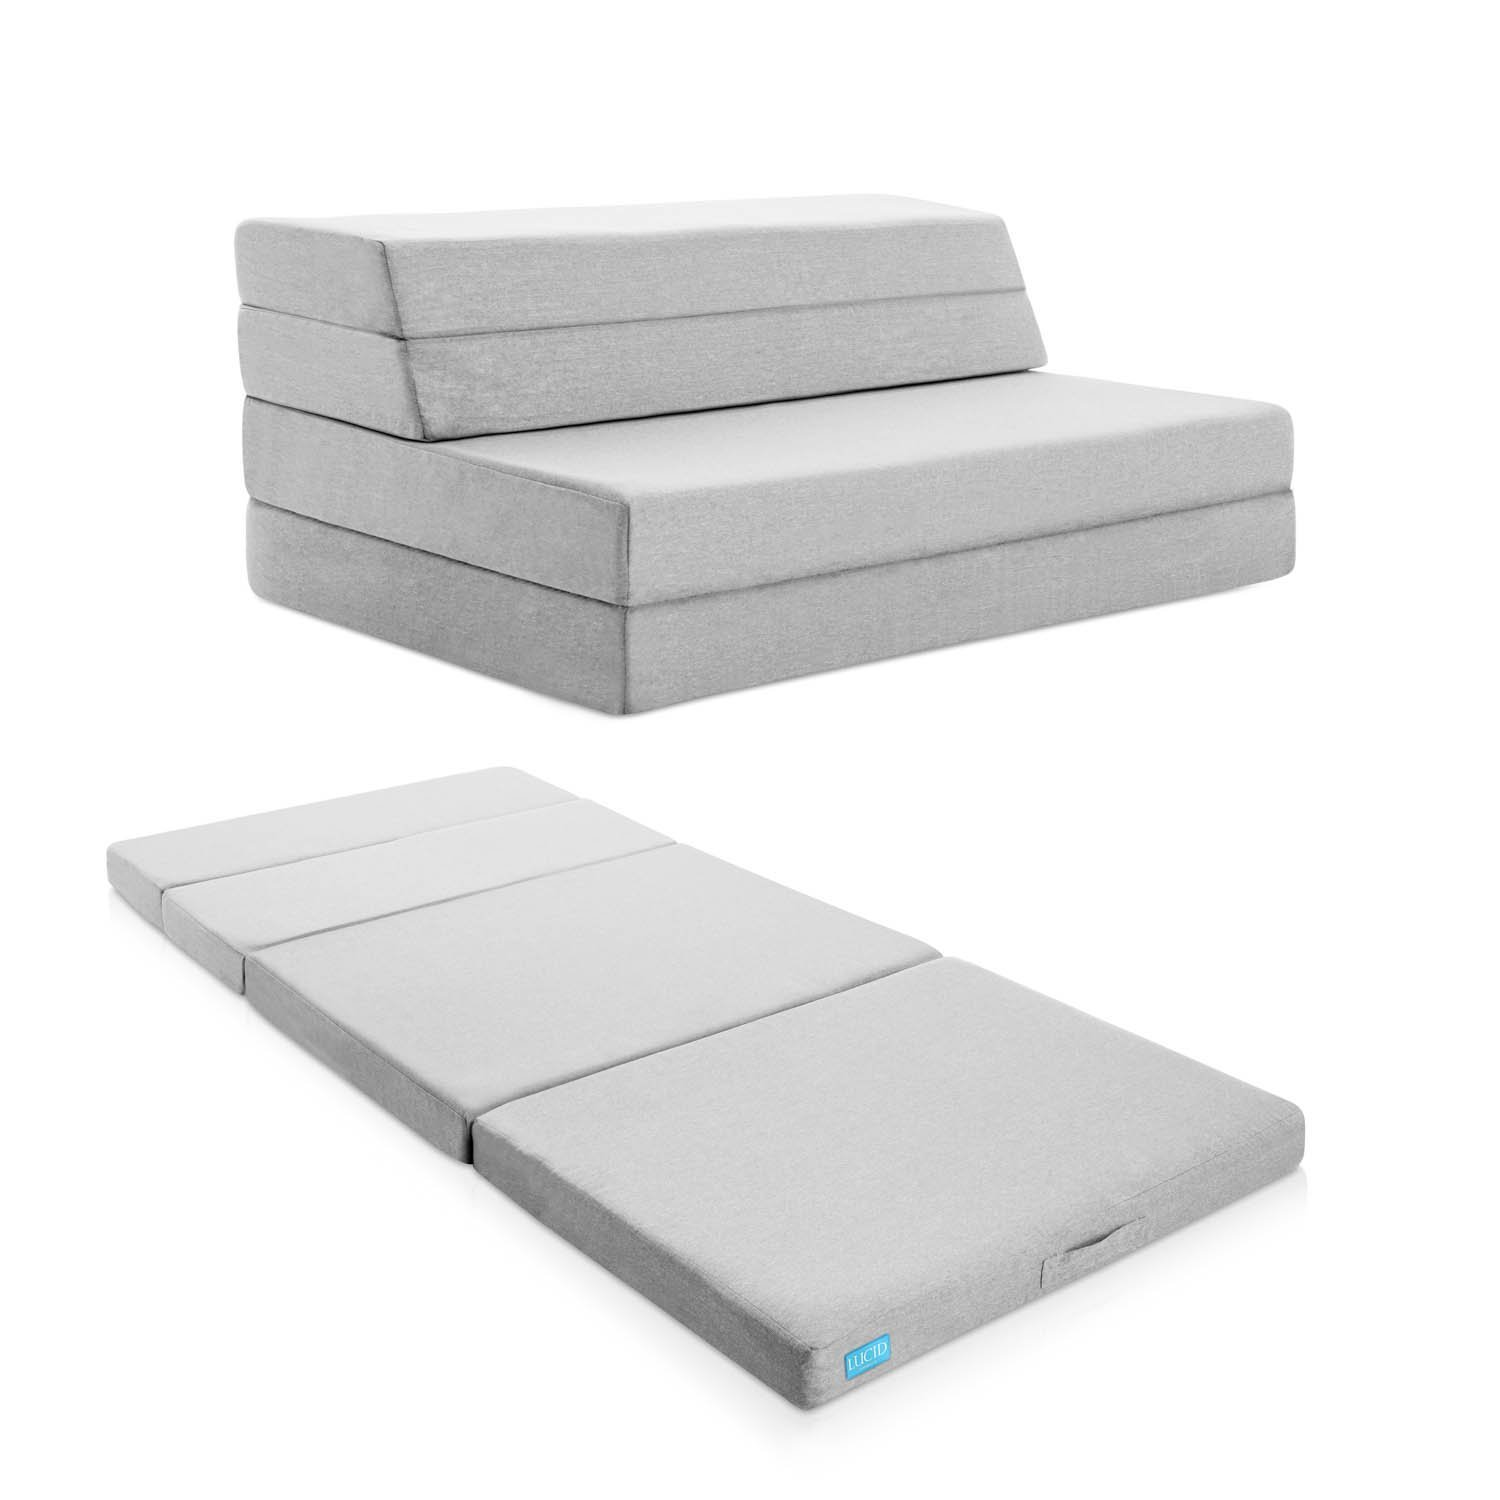 LUCID 4 Inch Folding Mattress and Sofa with Removable Indoor / Outdoor Fabric Cover - Twin Size